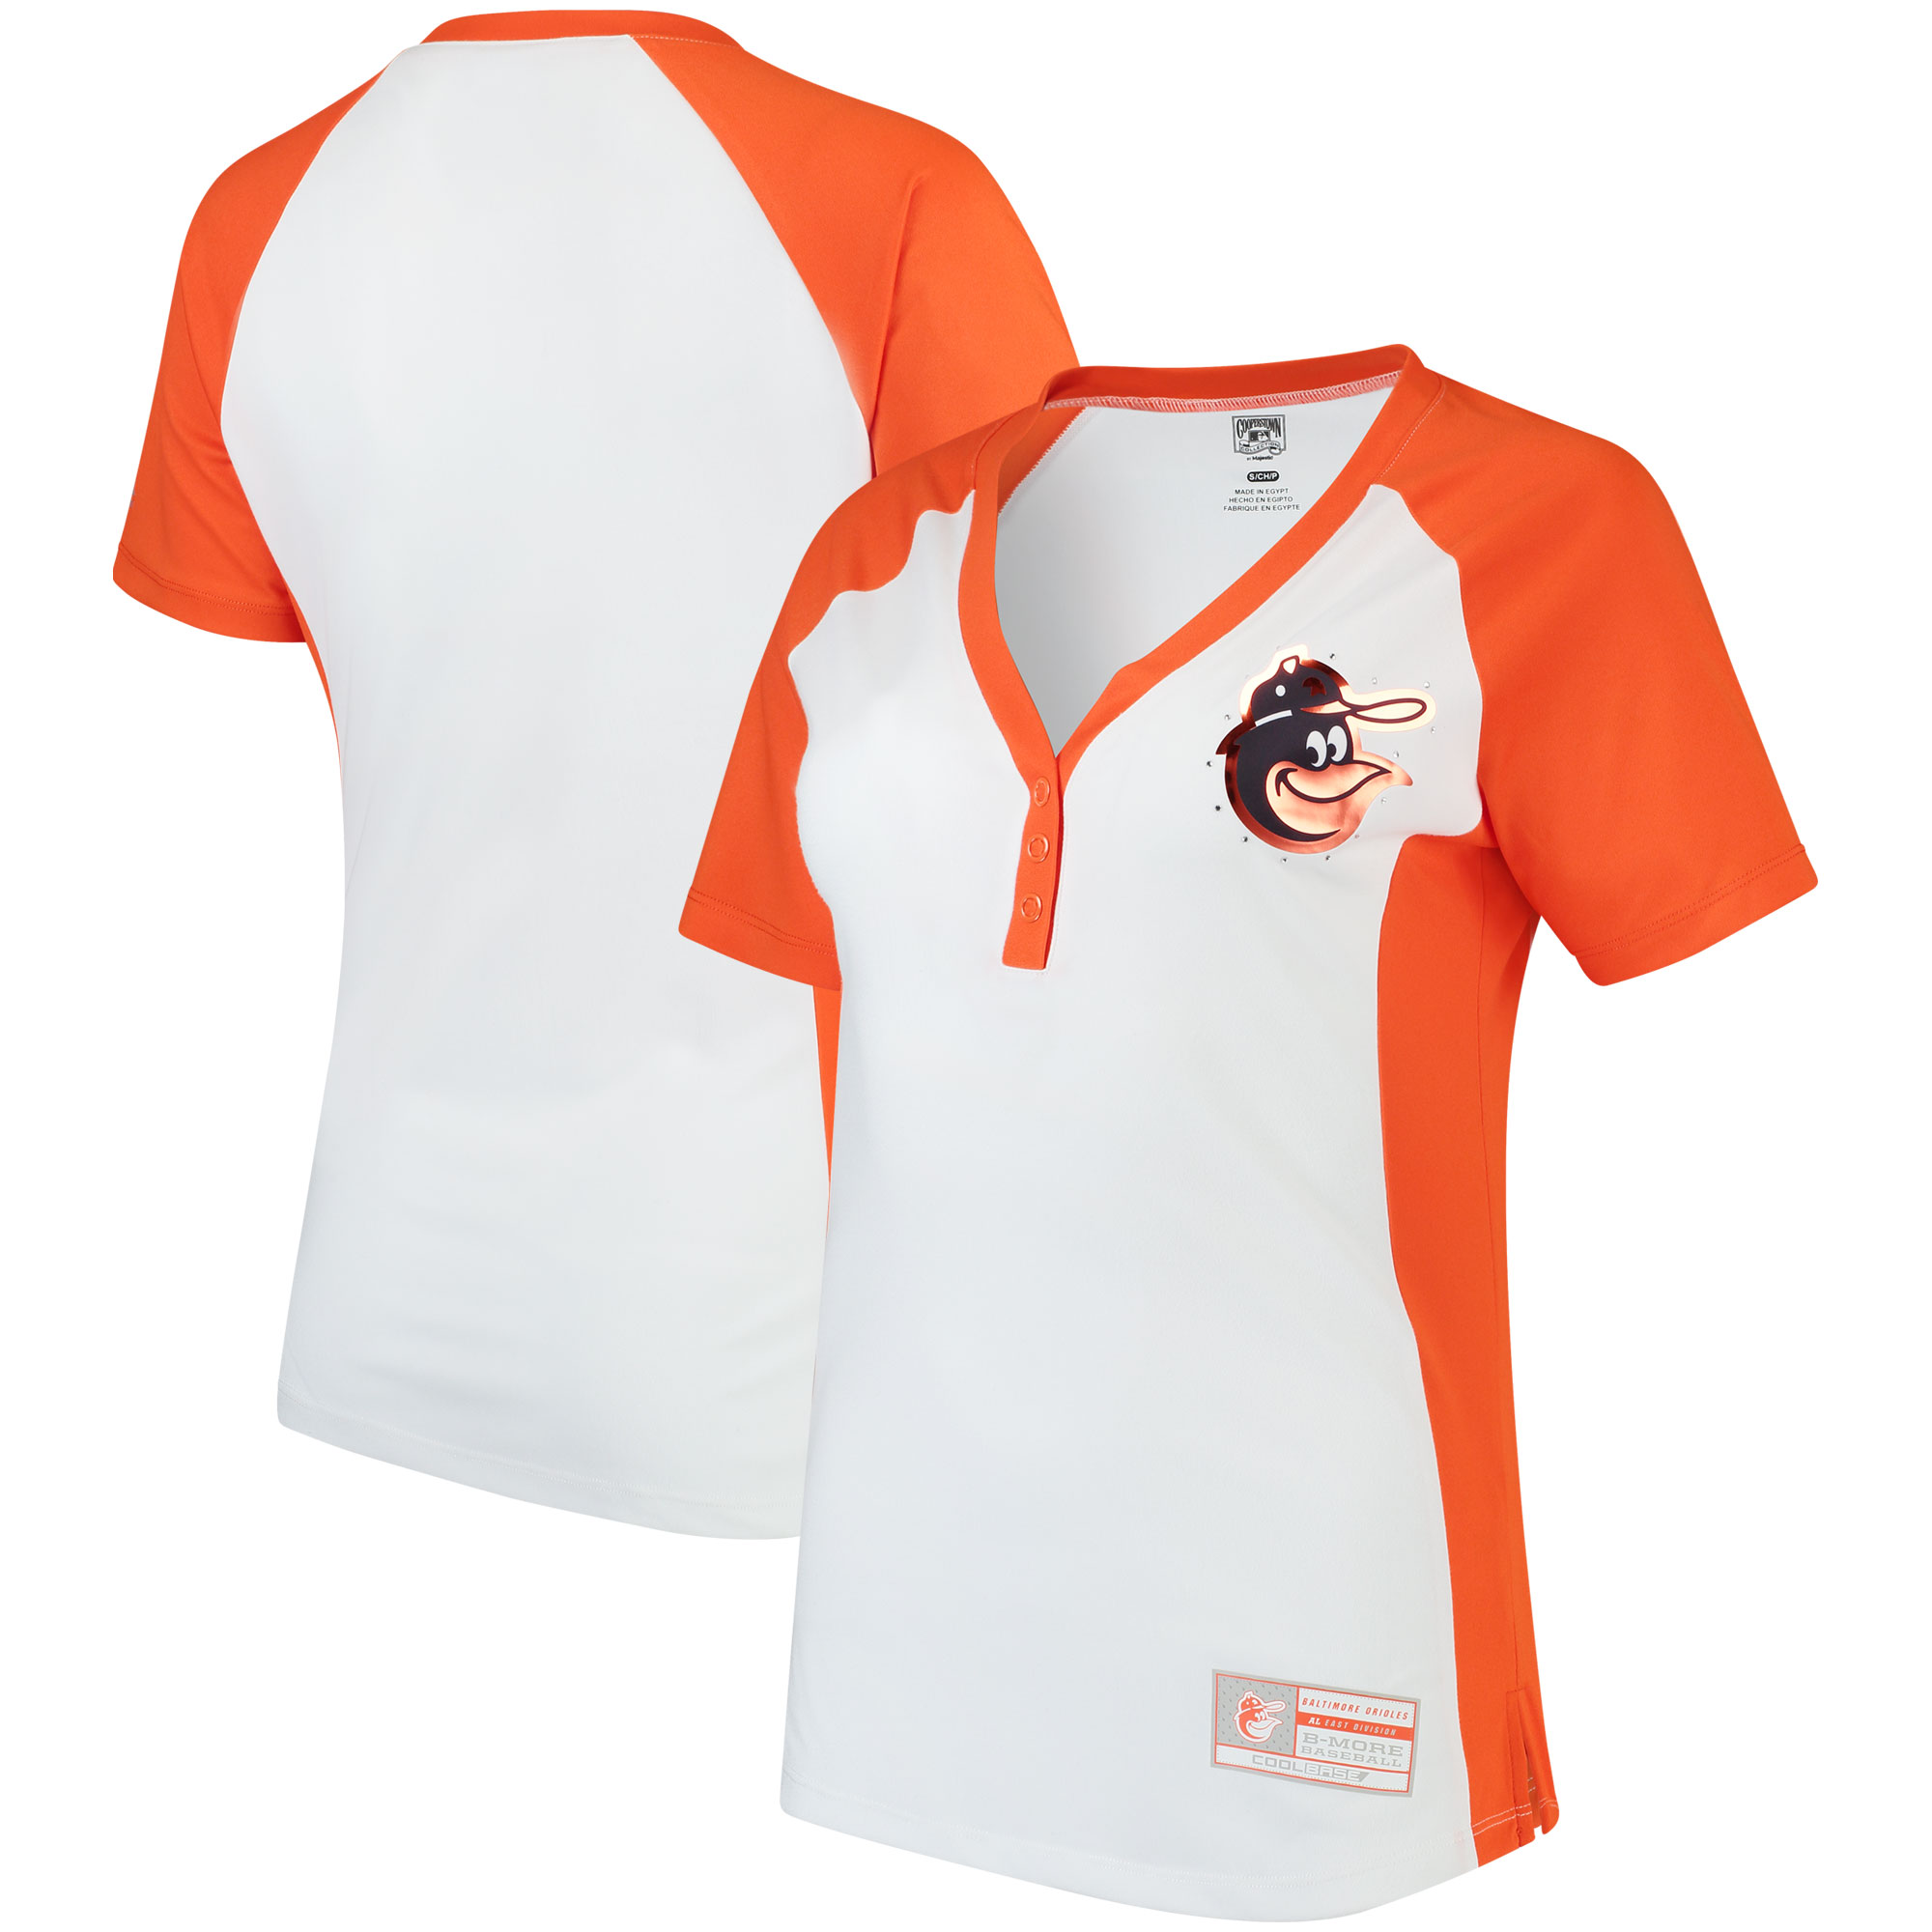 Baltimore Orioles Majestic Women's Cooperstown Collection League Diva V-Neck Henley T-Shirt - White/Orange